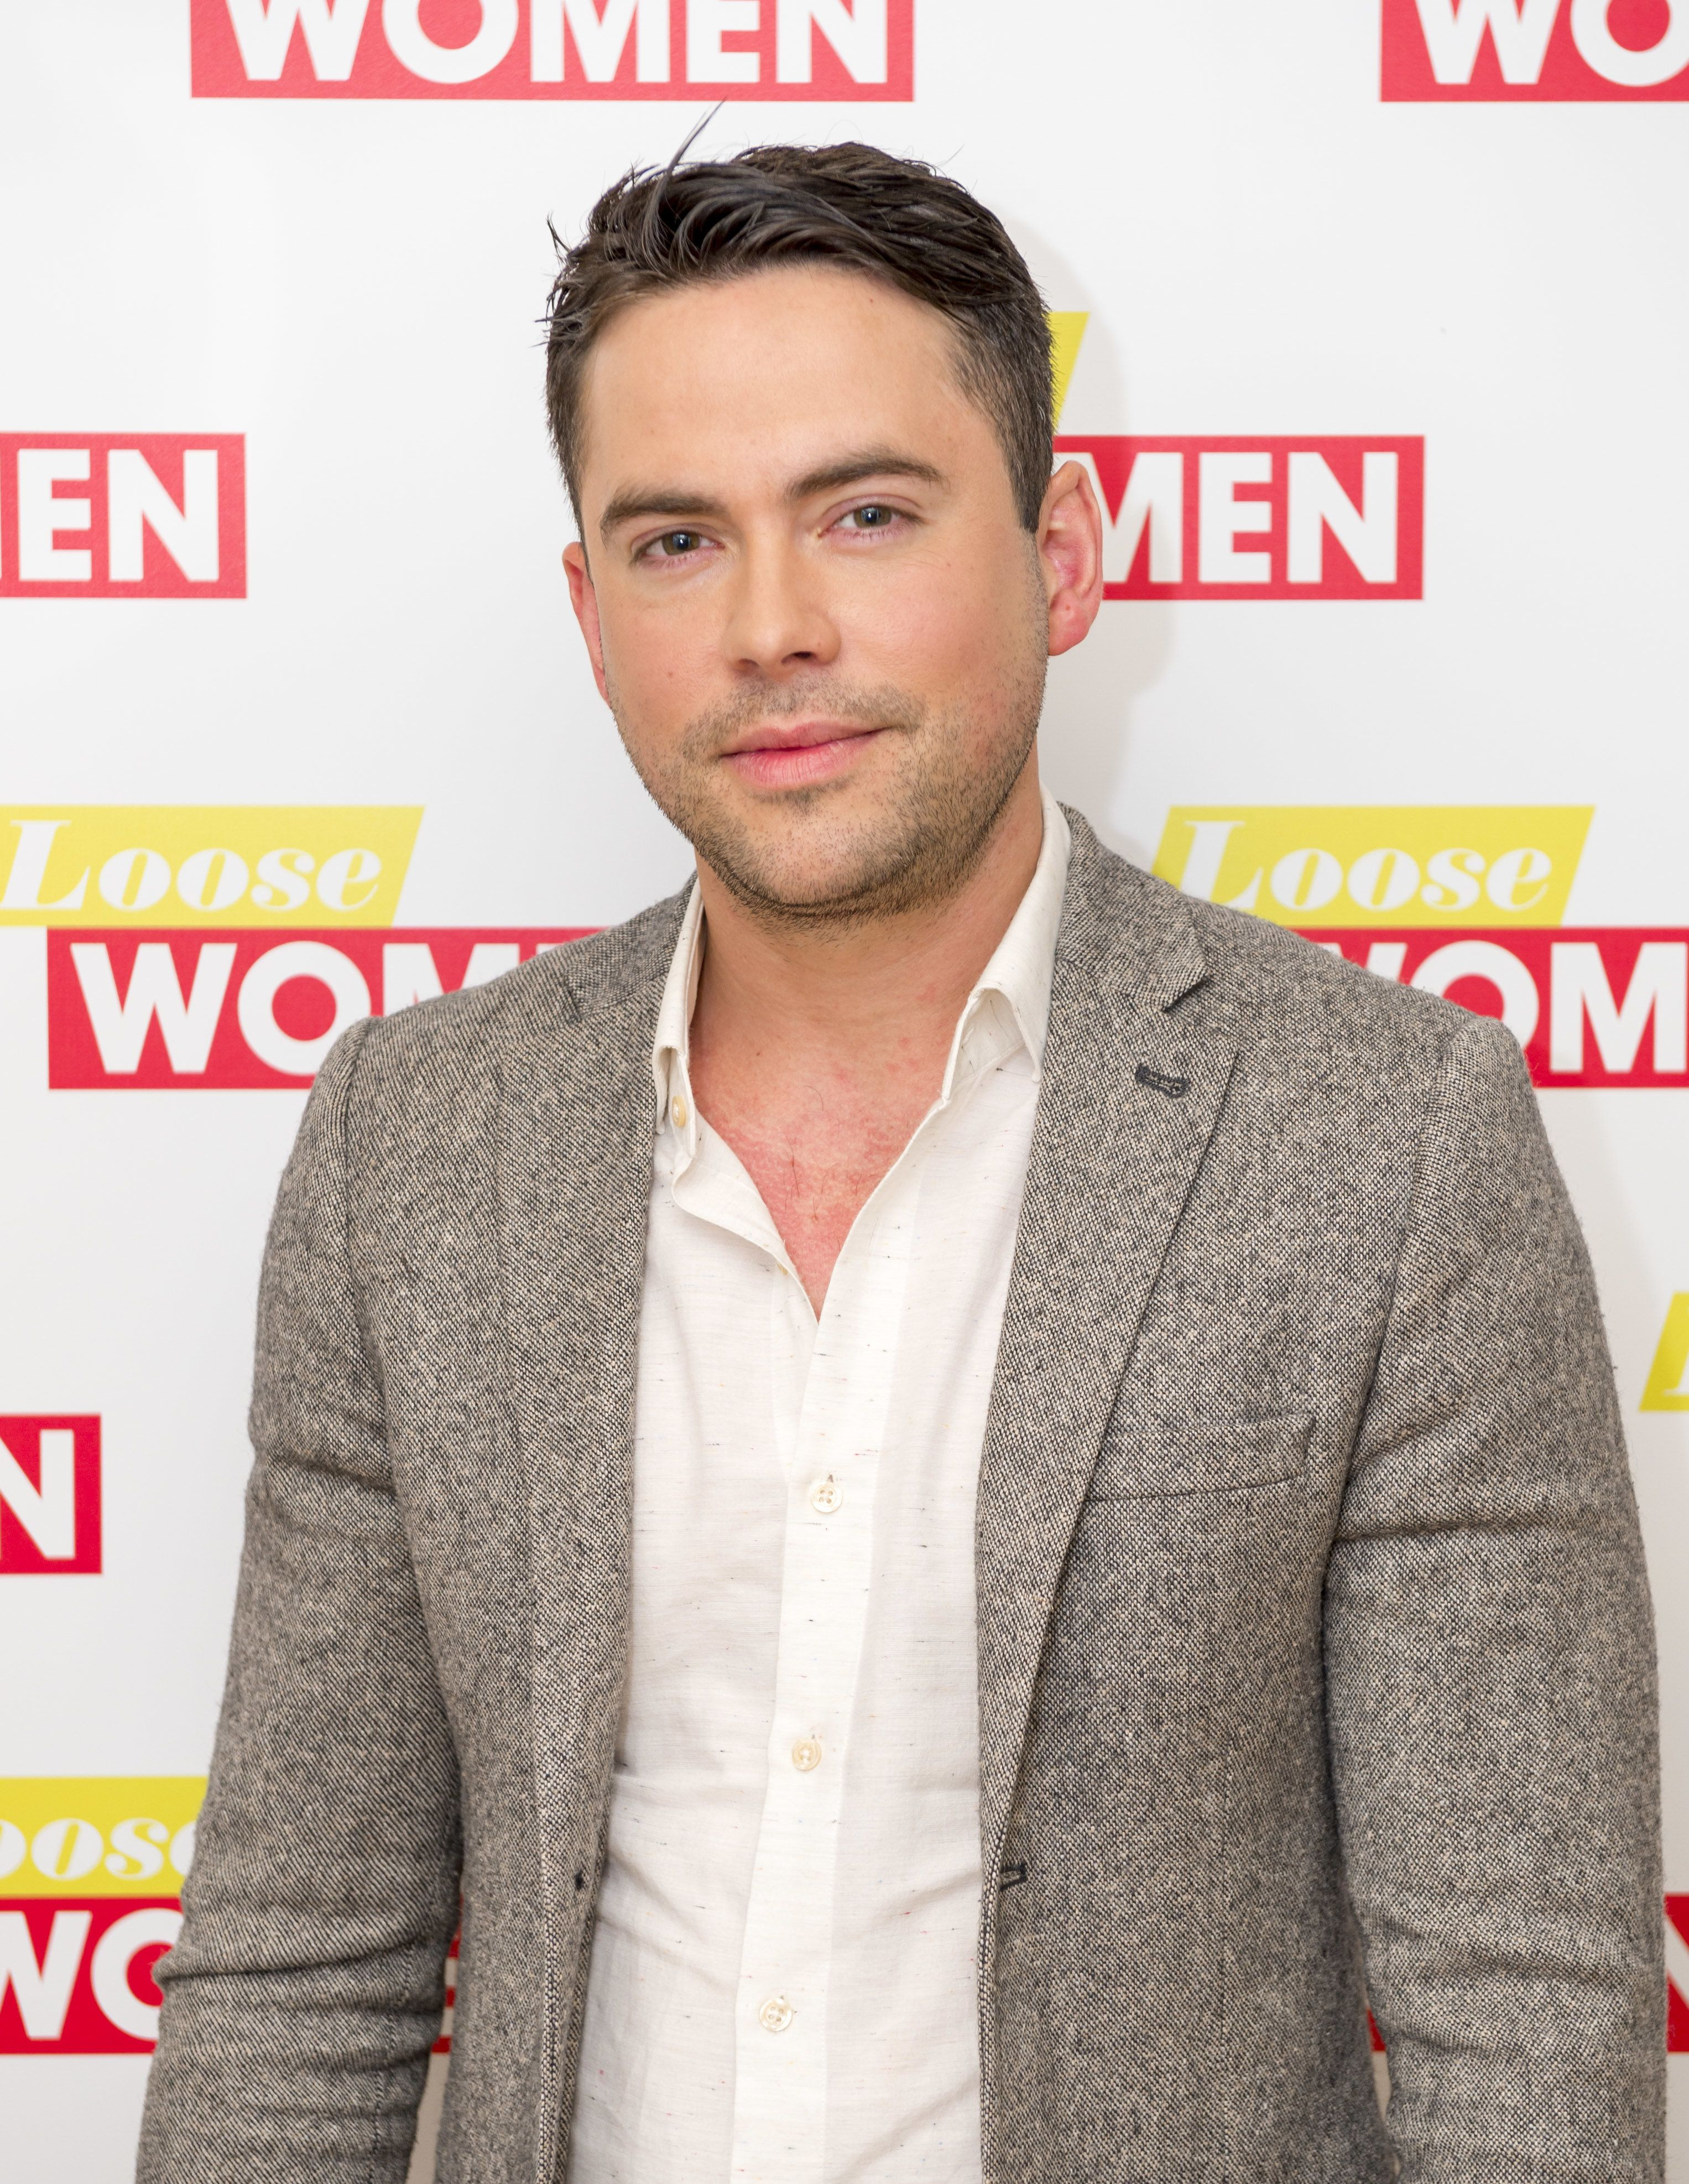 Bruno Langley Leaves 'Corrie', As Source Claims His Exit Is Not Linked To Assault